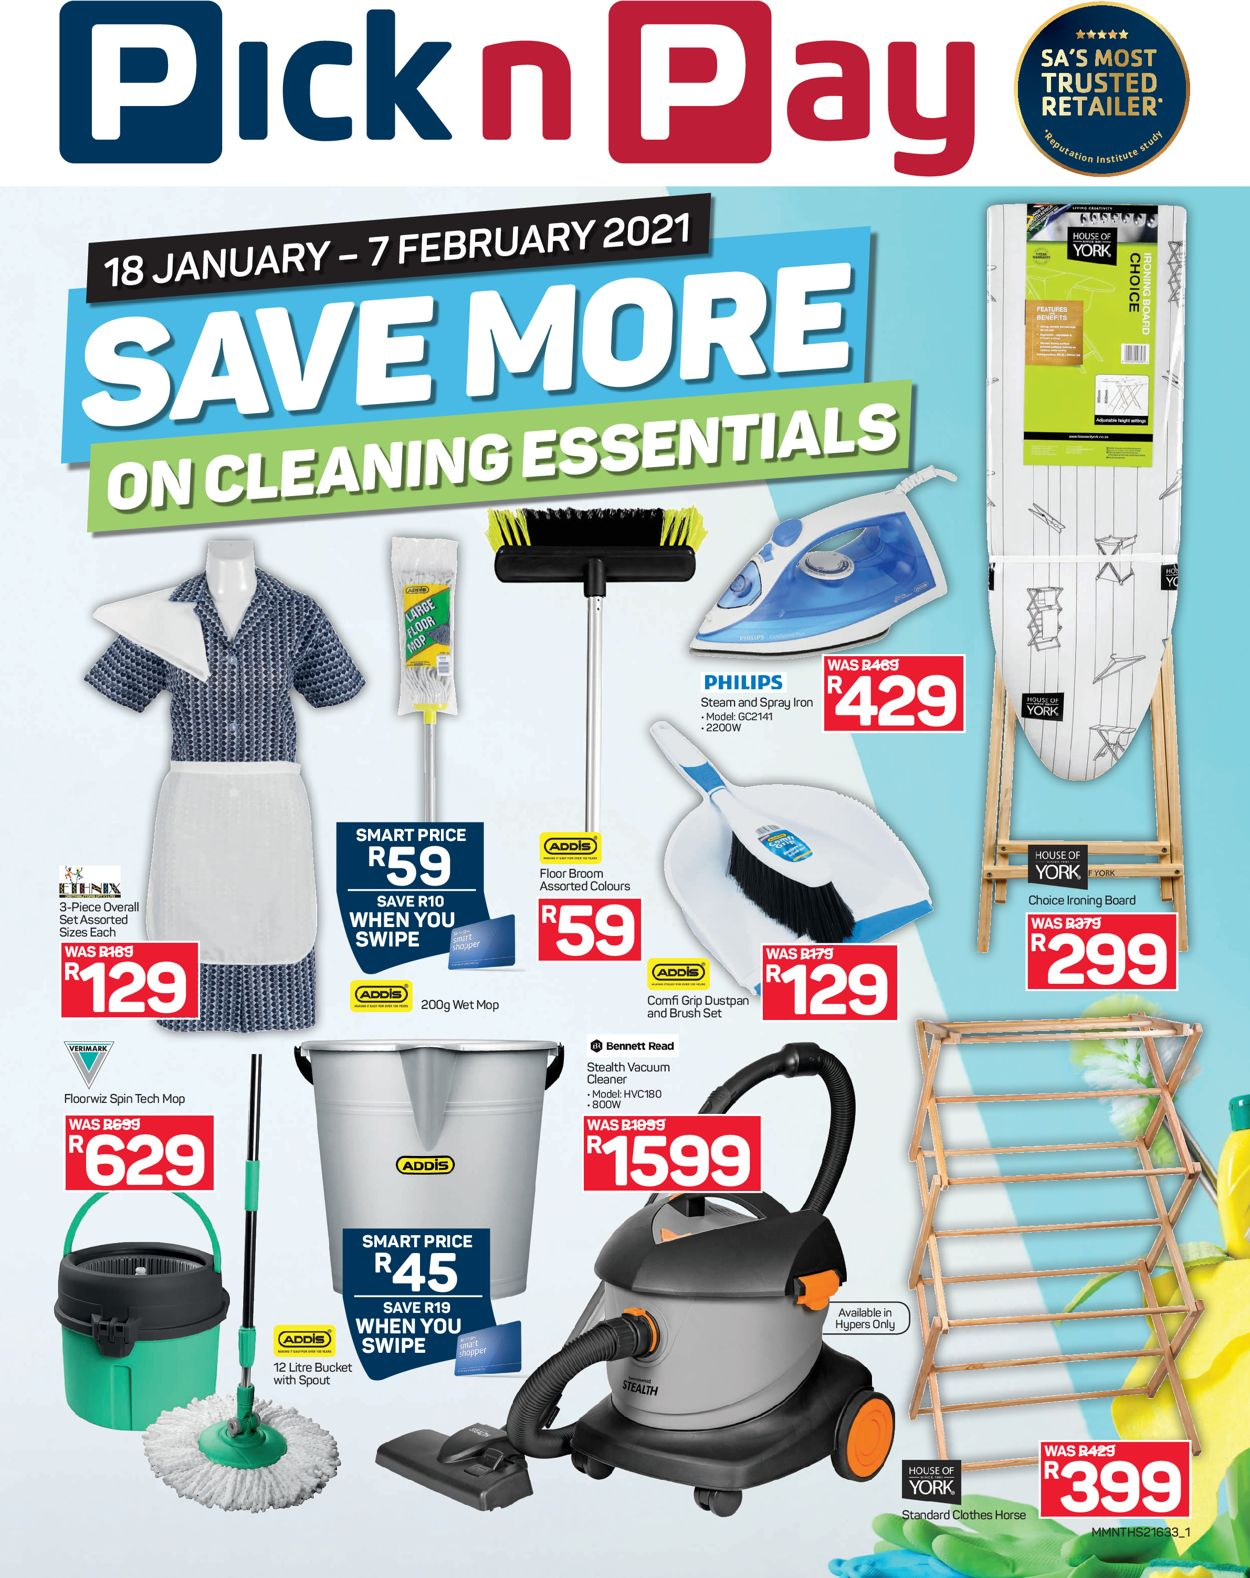 Pick n Pay Save More in Cleaning Essentials 2021 Catalogue - 2021/01/18-2021/02/07